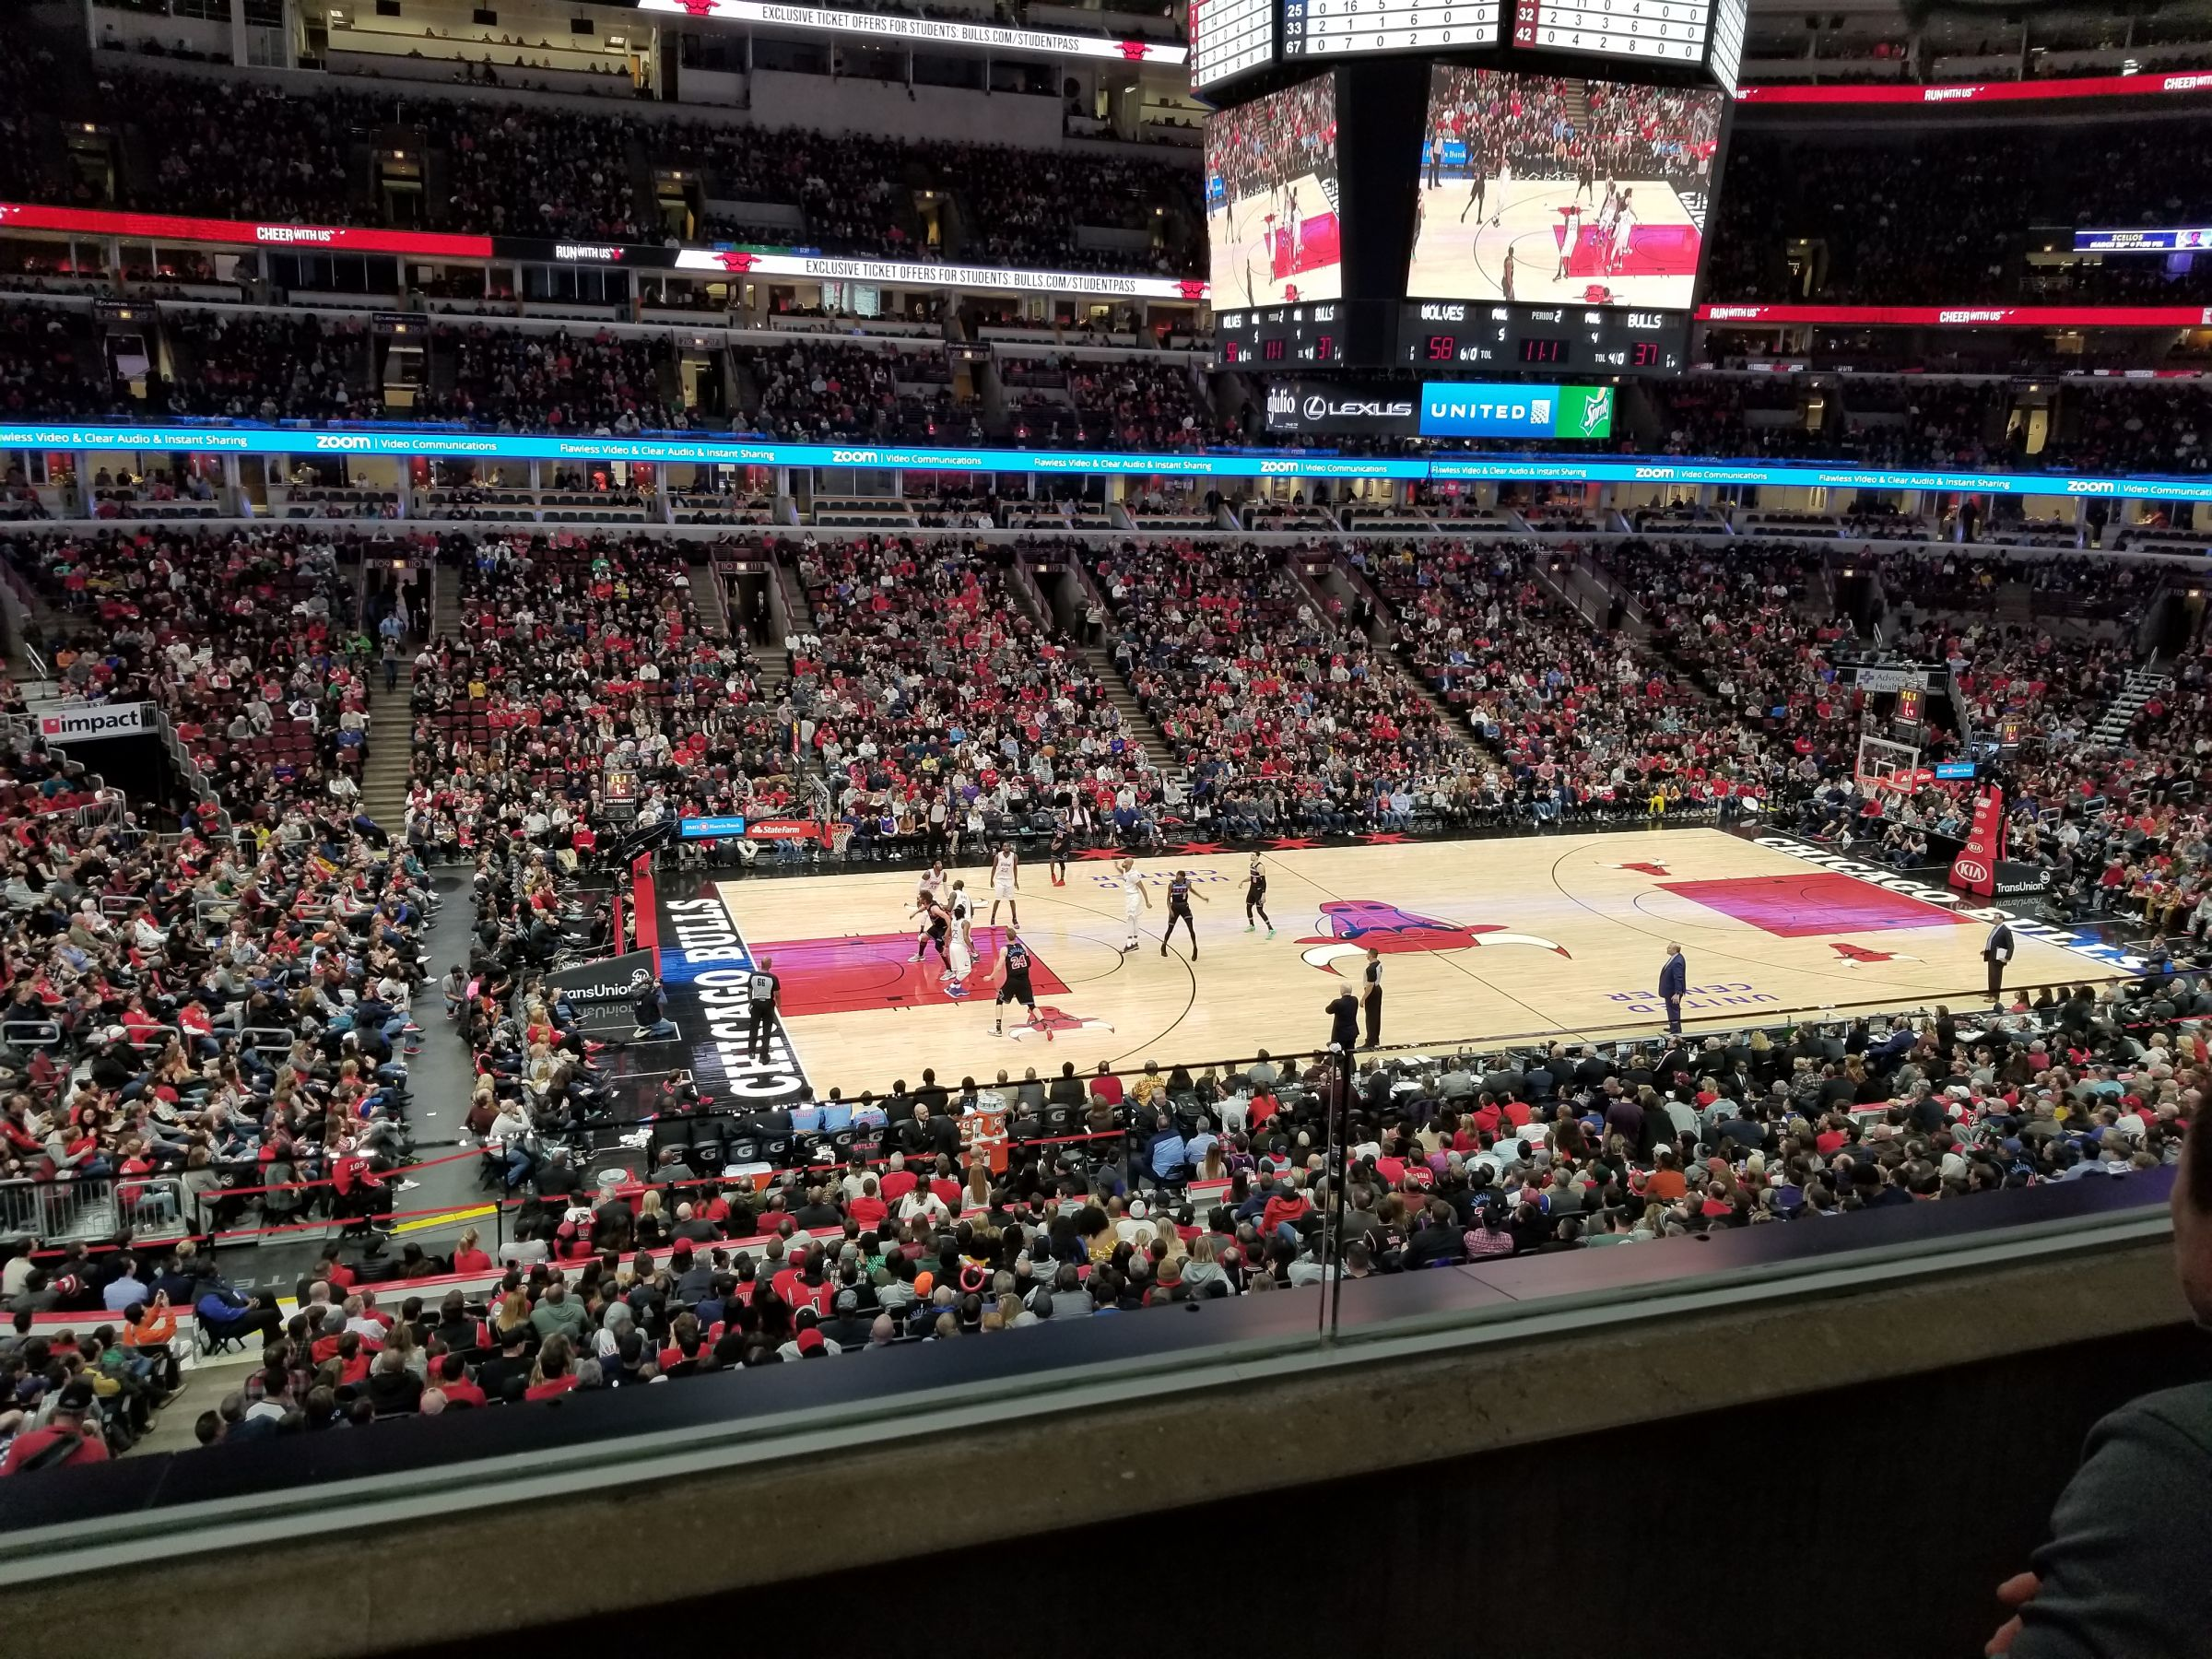 Chicago Bulls Seat View for United Center Section 202, Row 2, Seat 14